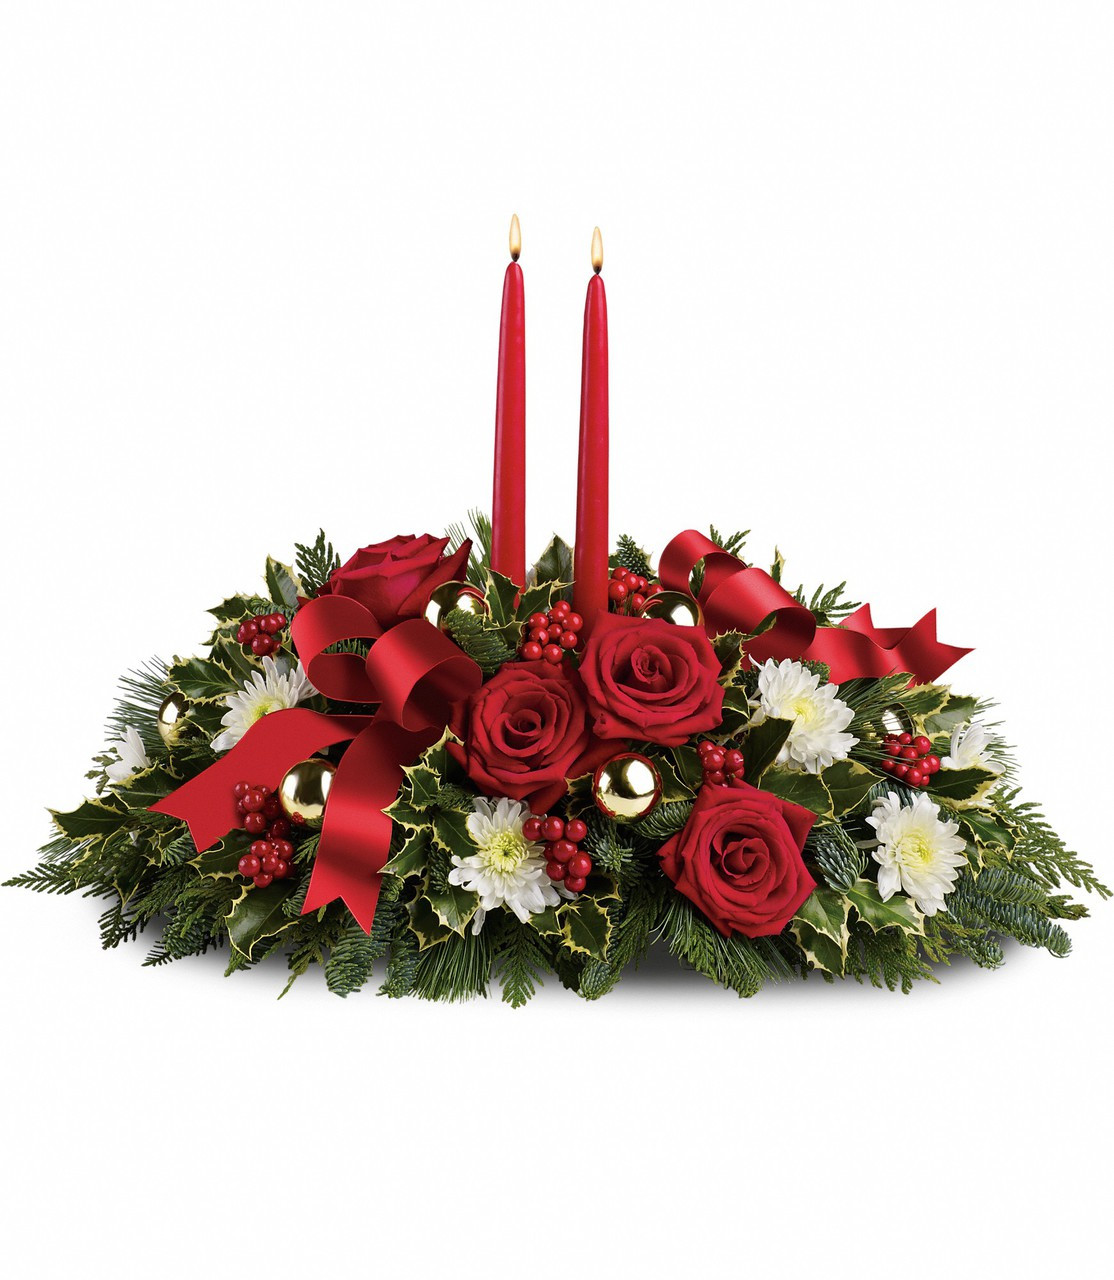 Holiday shimmer christmas centerpiece with candles